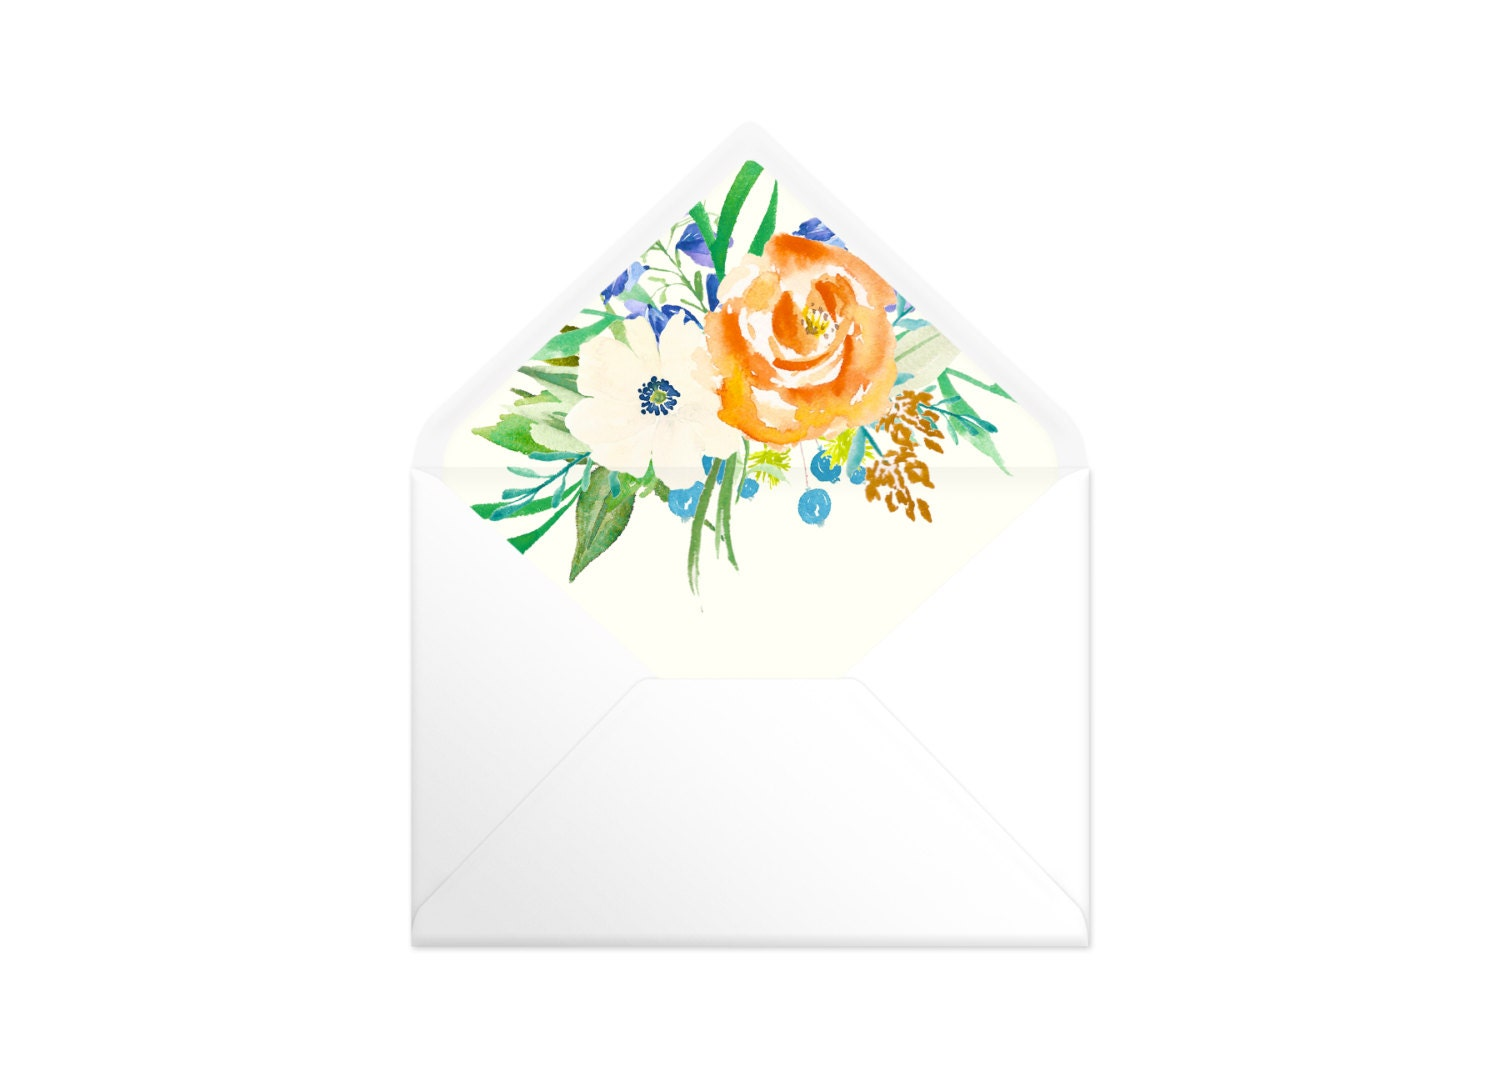 Printable Envelope Liner  Cream Background With Orange And Blue Flowers. 9 Sizes. Envelope Template DIY Wedding Printable Invitation